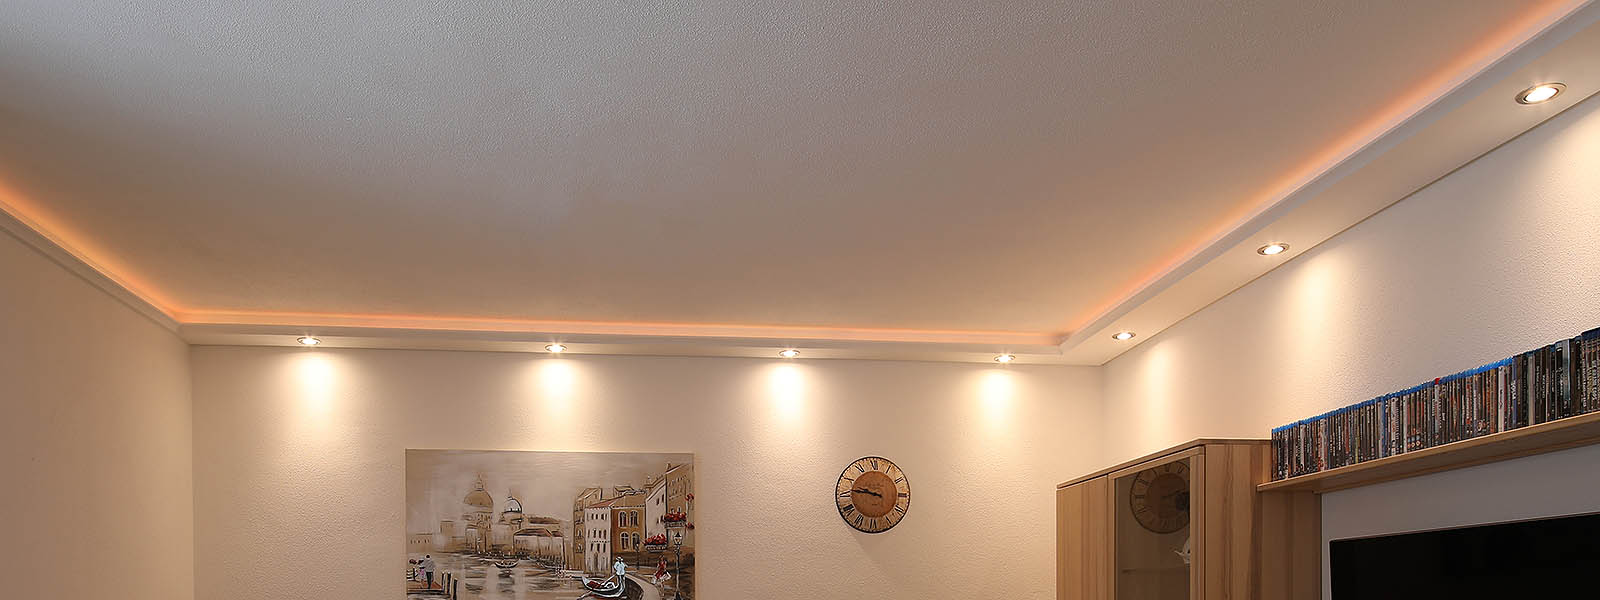 Full Size of Wohnzimmer Mit Led Beleuchtung Led Indirekte Beleuchtung Fürs Wohnzimmer Led Beleuchtung Wohnzimmer Farbwechsel Wohnzimmer Beleuchtung Mit Led Wohnzimmer Led Beleuchtung Wohnzimmer